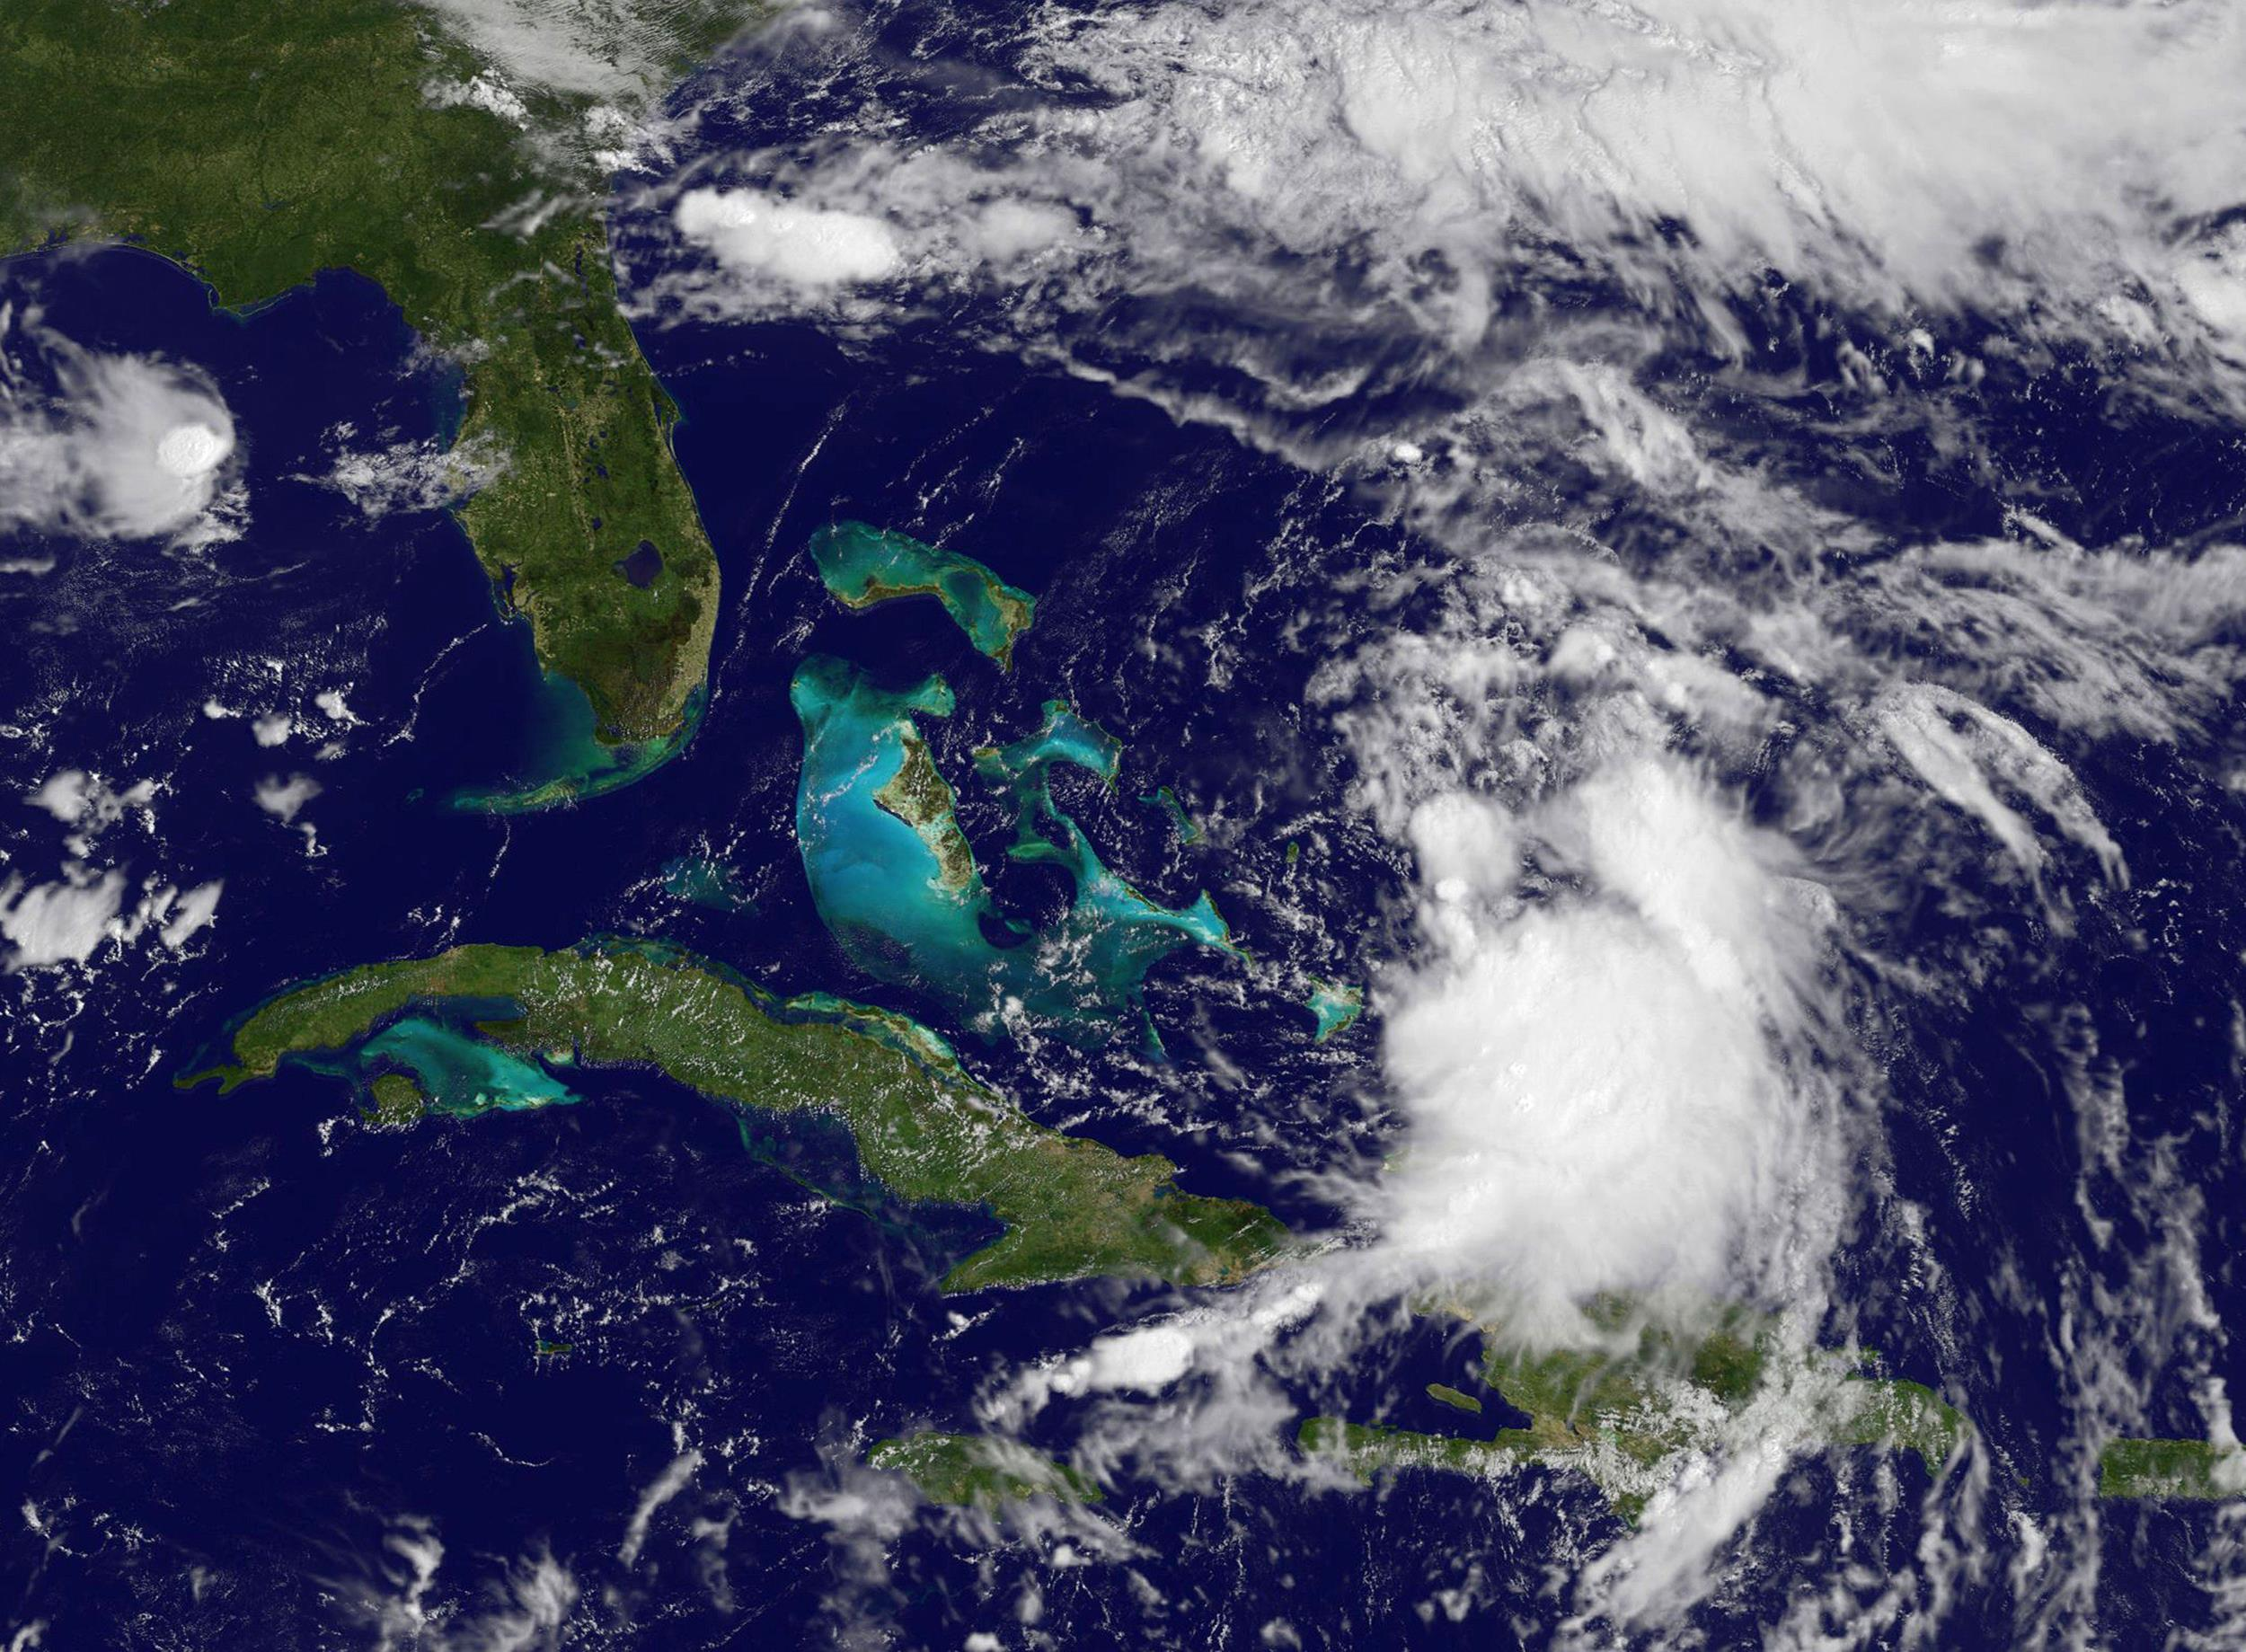 Image: NASA GOES satellite image shows Tropical Storm Cristobal(Lower-R) forming near the Bahamas.